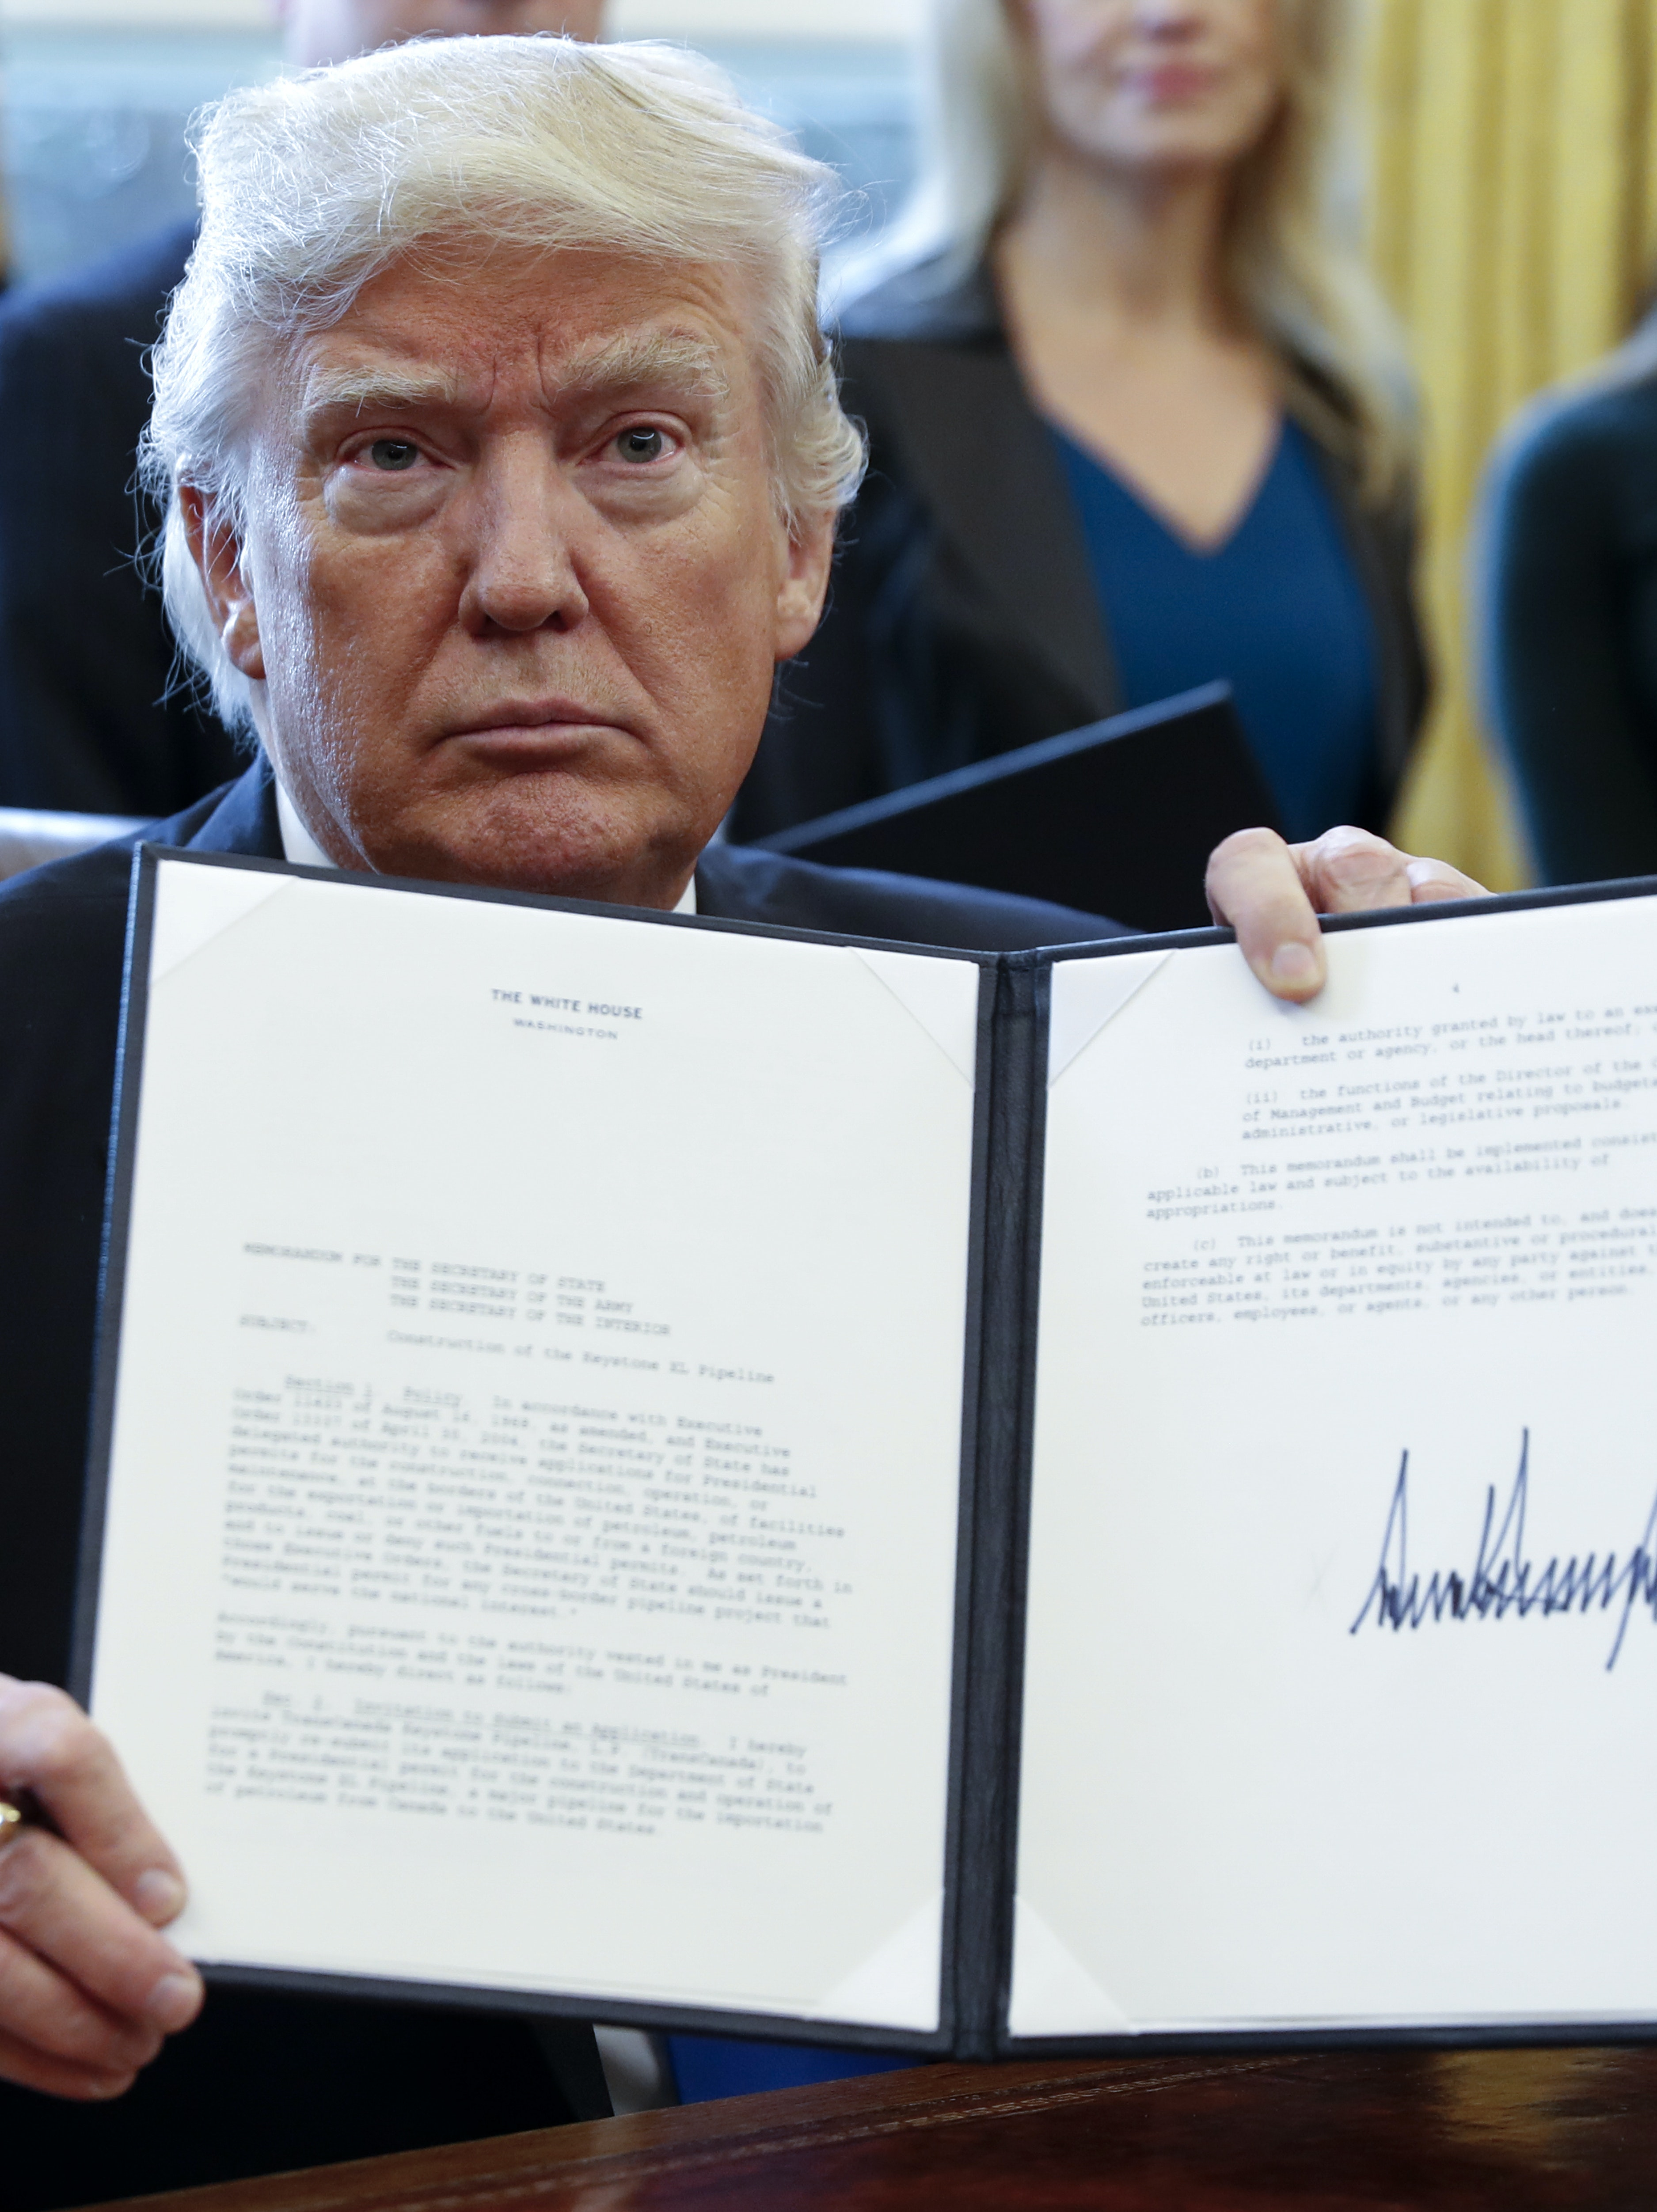 WASHINGTON, DC - JANUARY 24: US President Donald Trump displays one of five executive orders he signed related to the oil pipeline industry in the oval office of the White House January 24, 2017 in Washington, DC. President Trump has a full day of meetings including one with Senate Majority Leader Mitch McConnell and another with the full Senate leadership. (Photo by Shawn Thew-Pool/Getty Images)